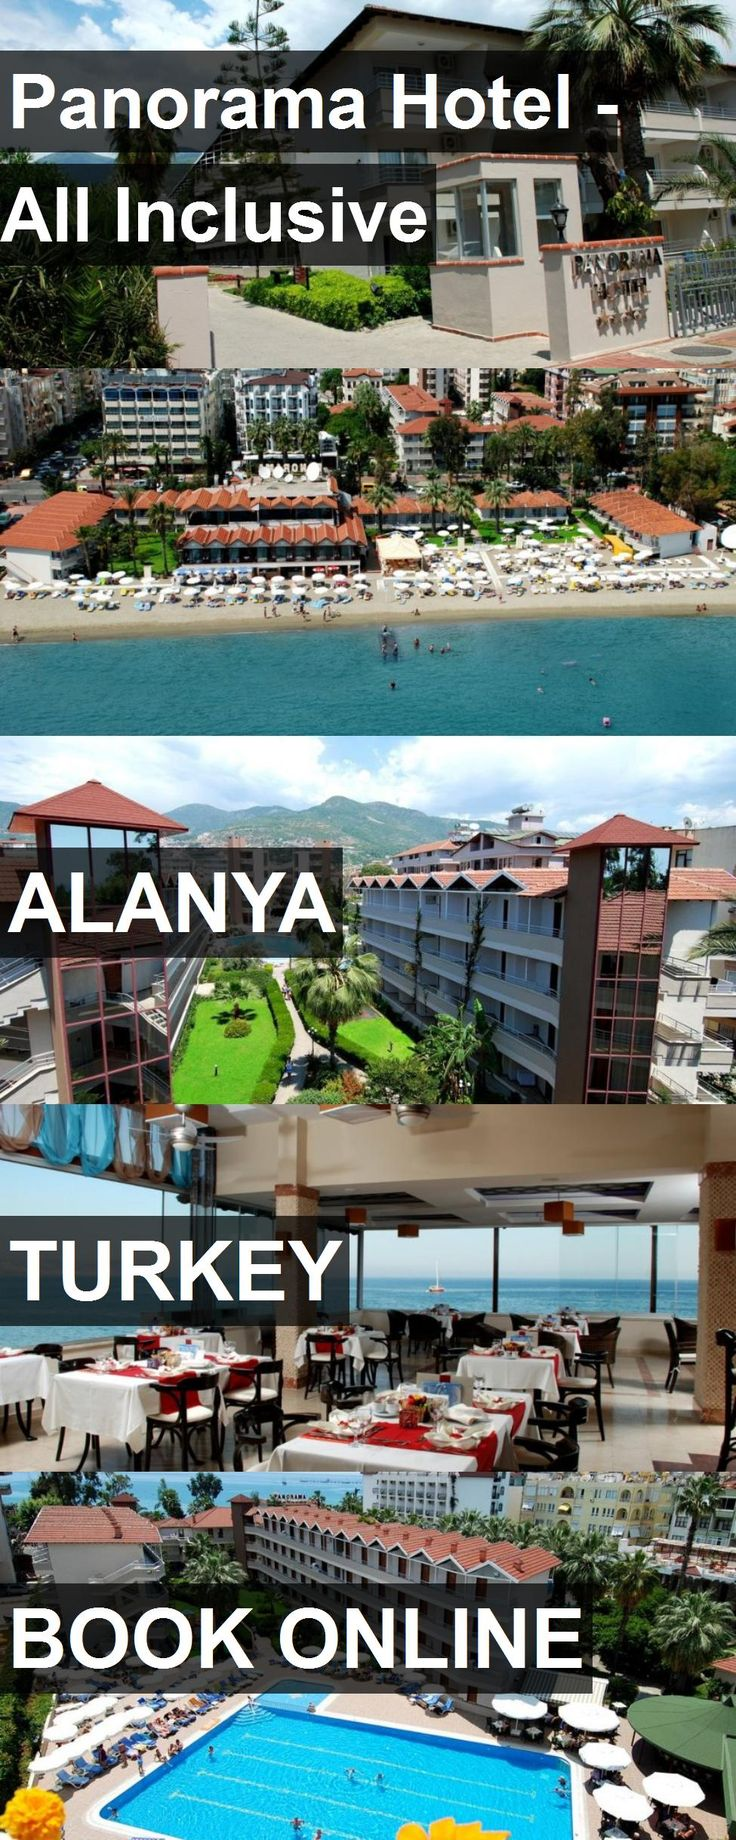 Hotel Panorama Hotel - All Inclusive in Alanya, Turkey. For more information, photos, reviews and best prices please follow the link. #Turkey #Alanya #PanoramaHotel-AllInclusive #hotel #travel #vacation